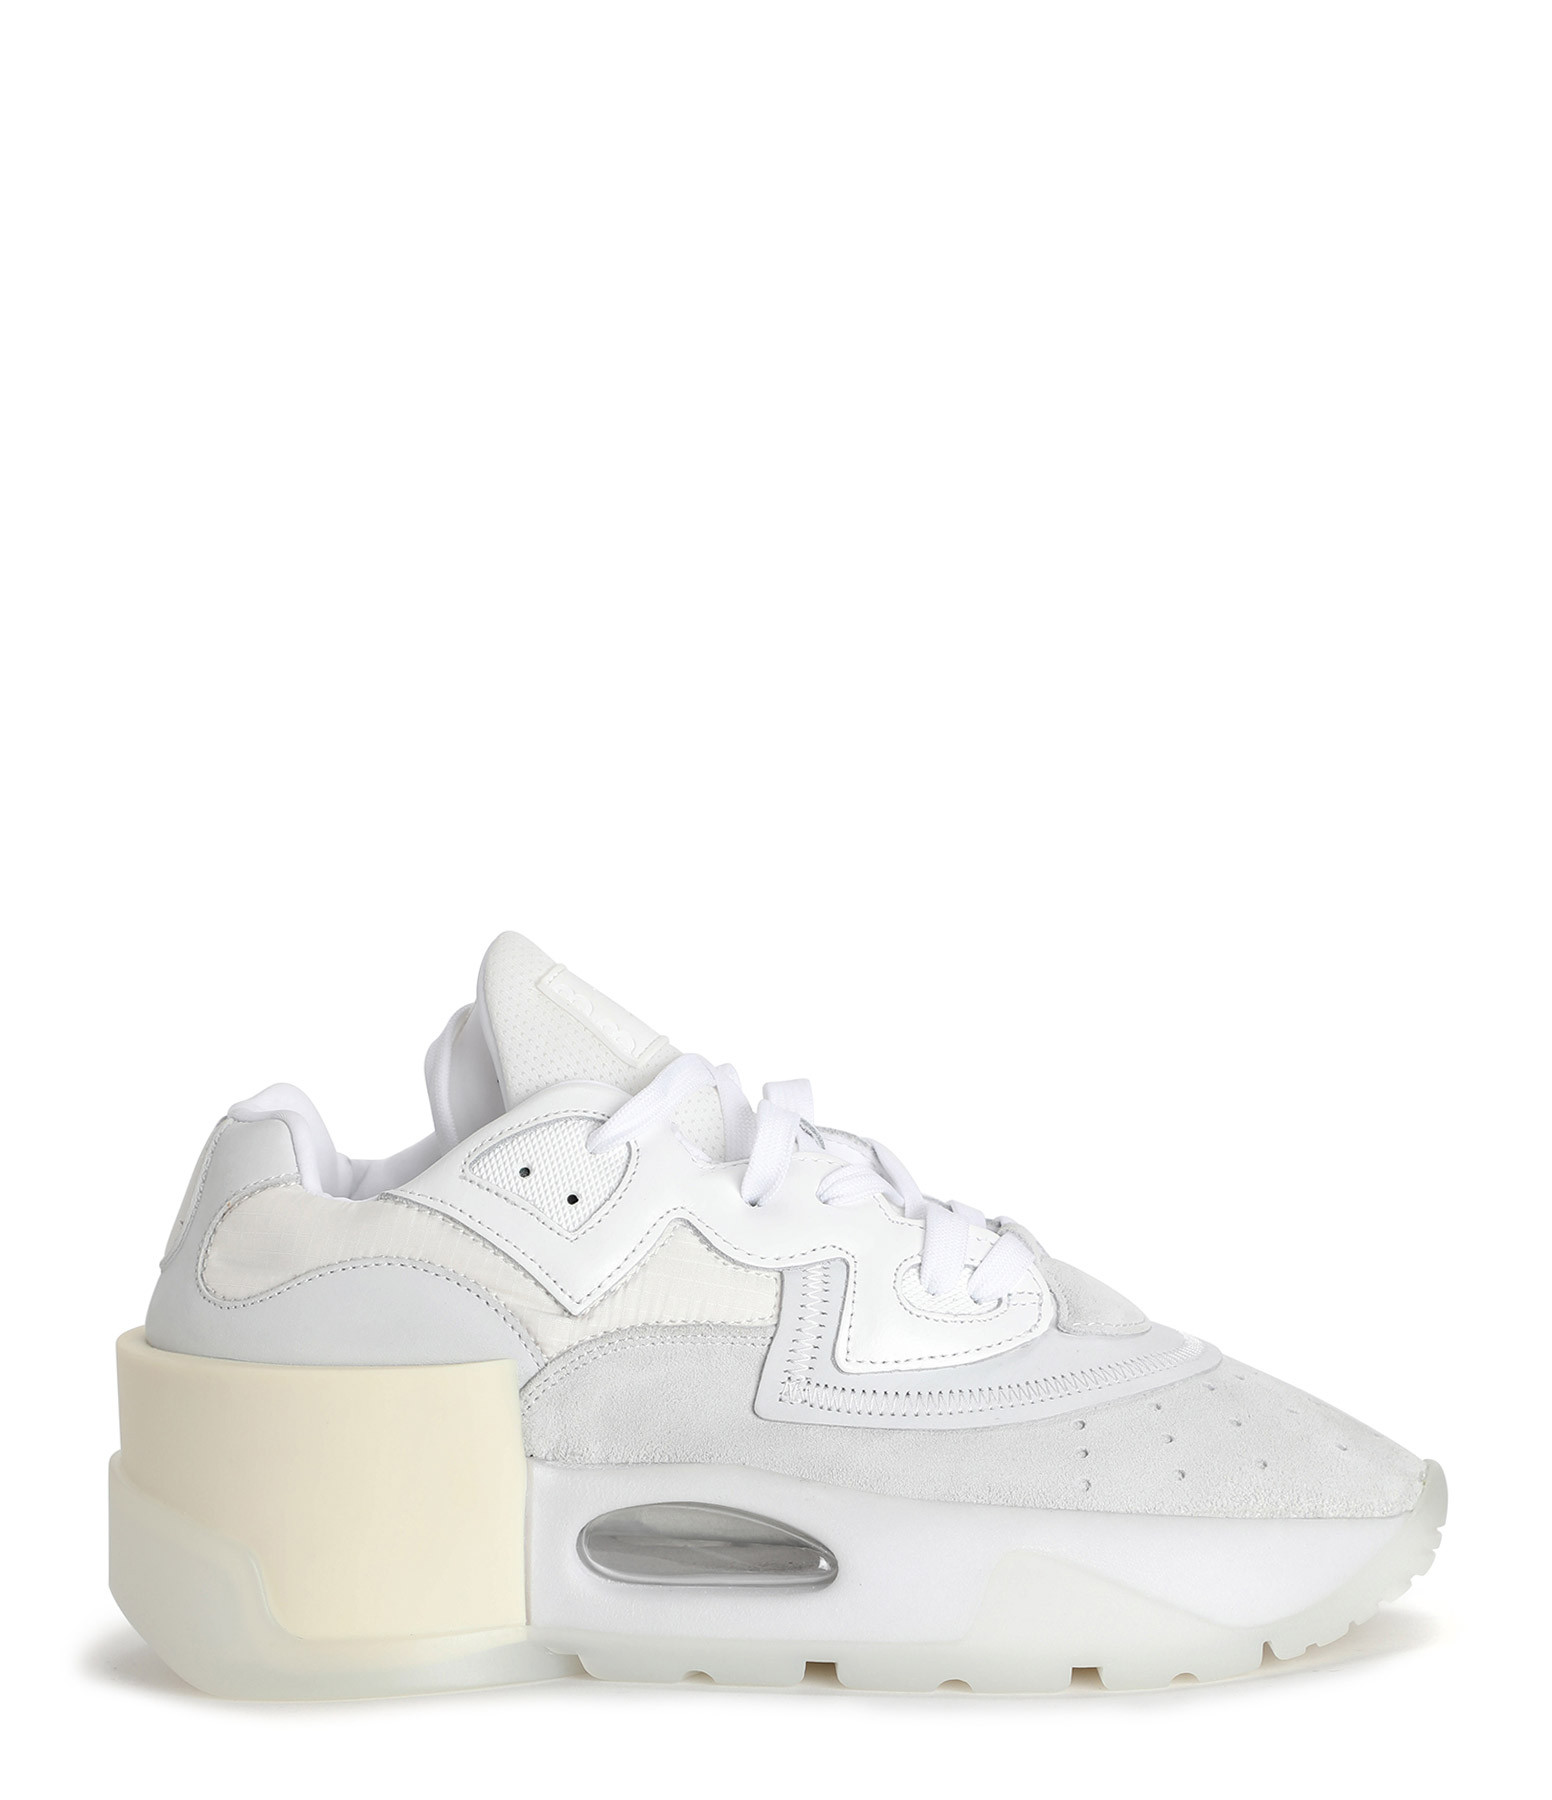 MM6 MAISON MARGIELA - Baskets Multimatières Cuir Mesh Nubuck Blanc